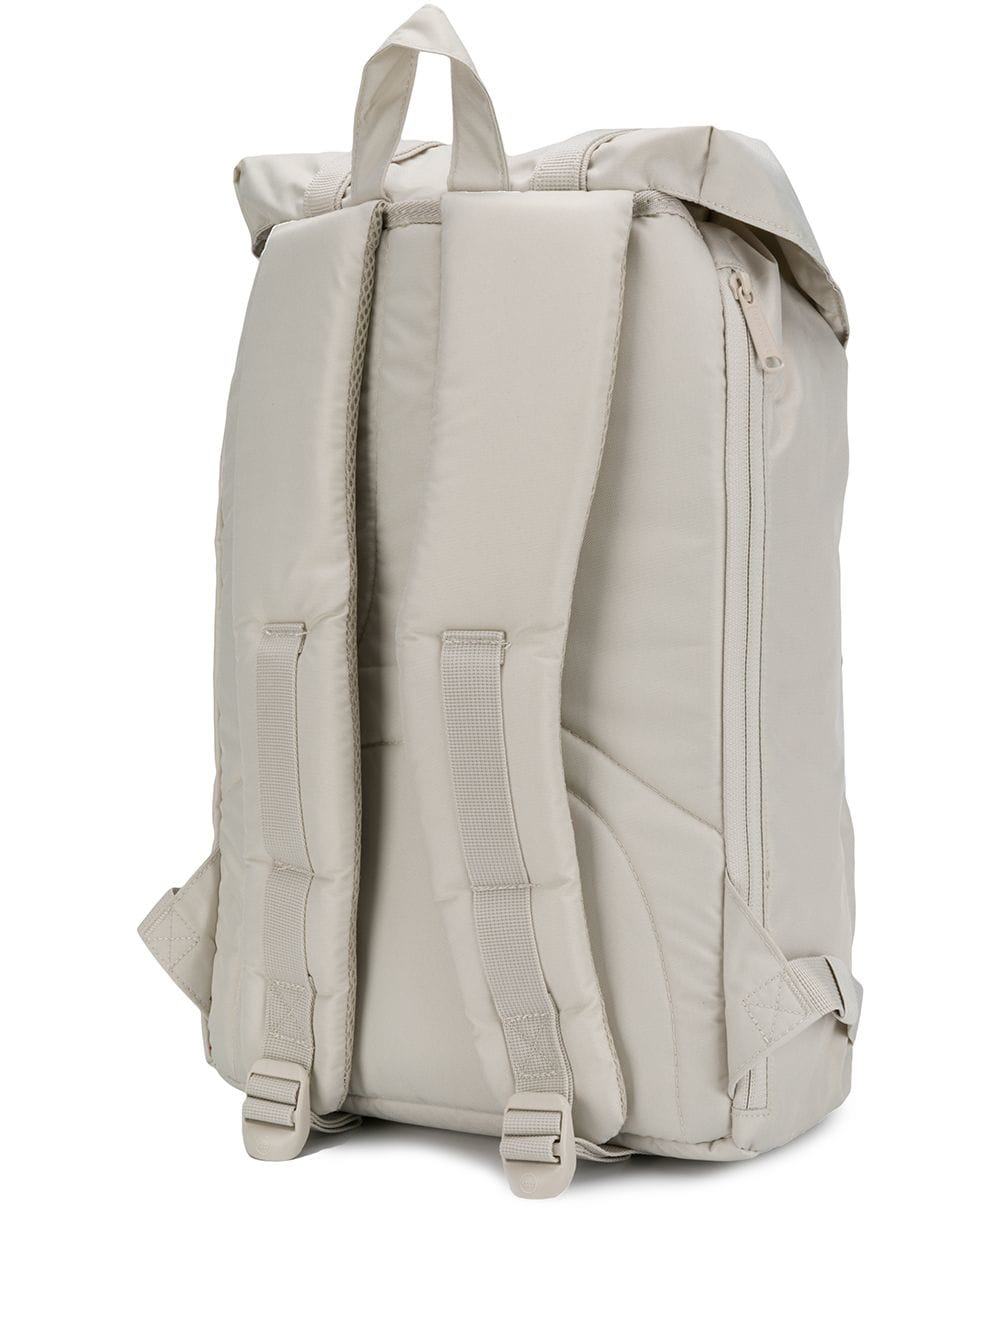 c0c02d969bb White cotton blend Moonstruck buckle backpack from Herschel Supply Co.  featuring a top handle